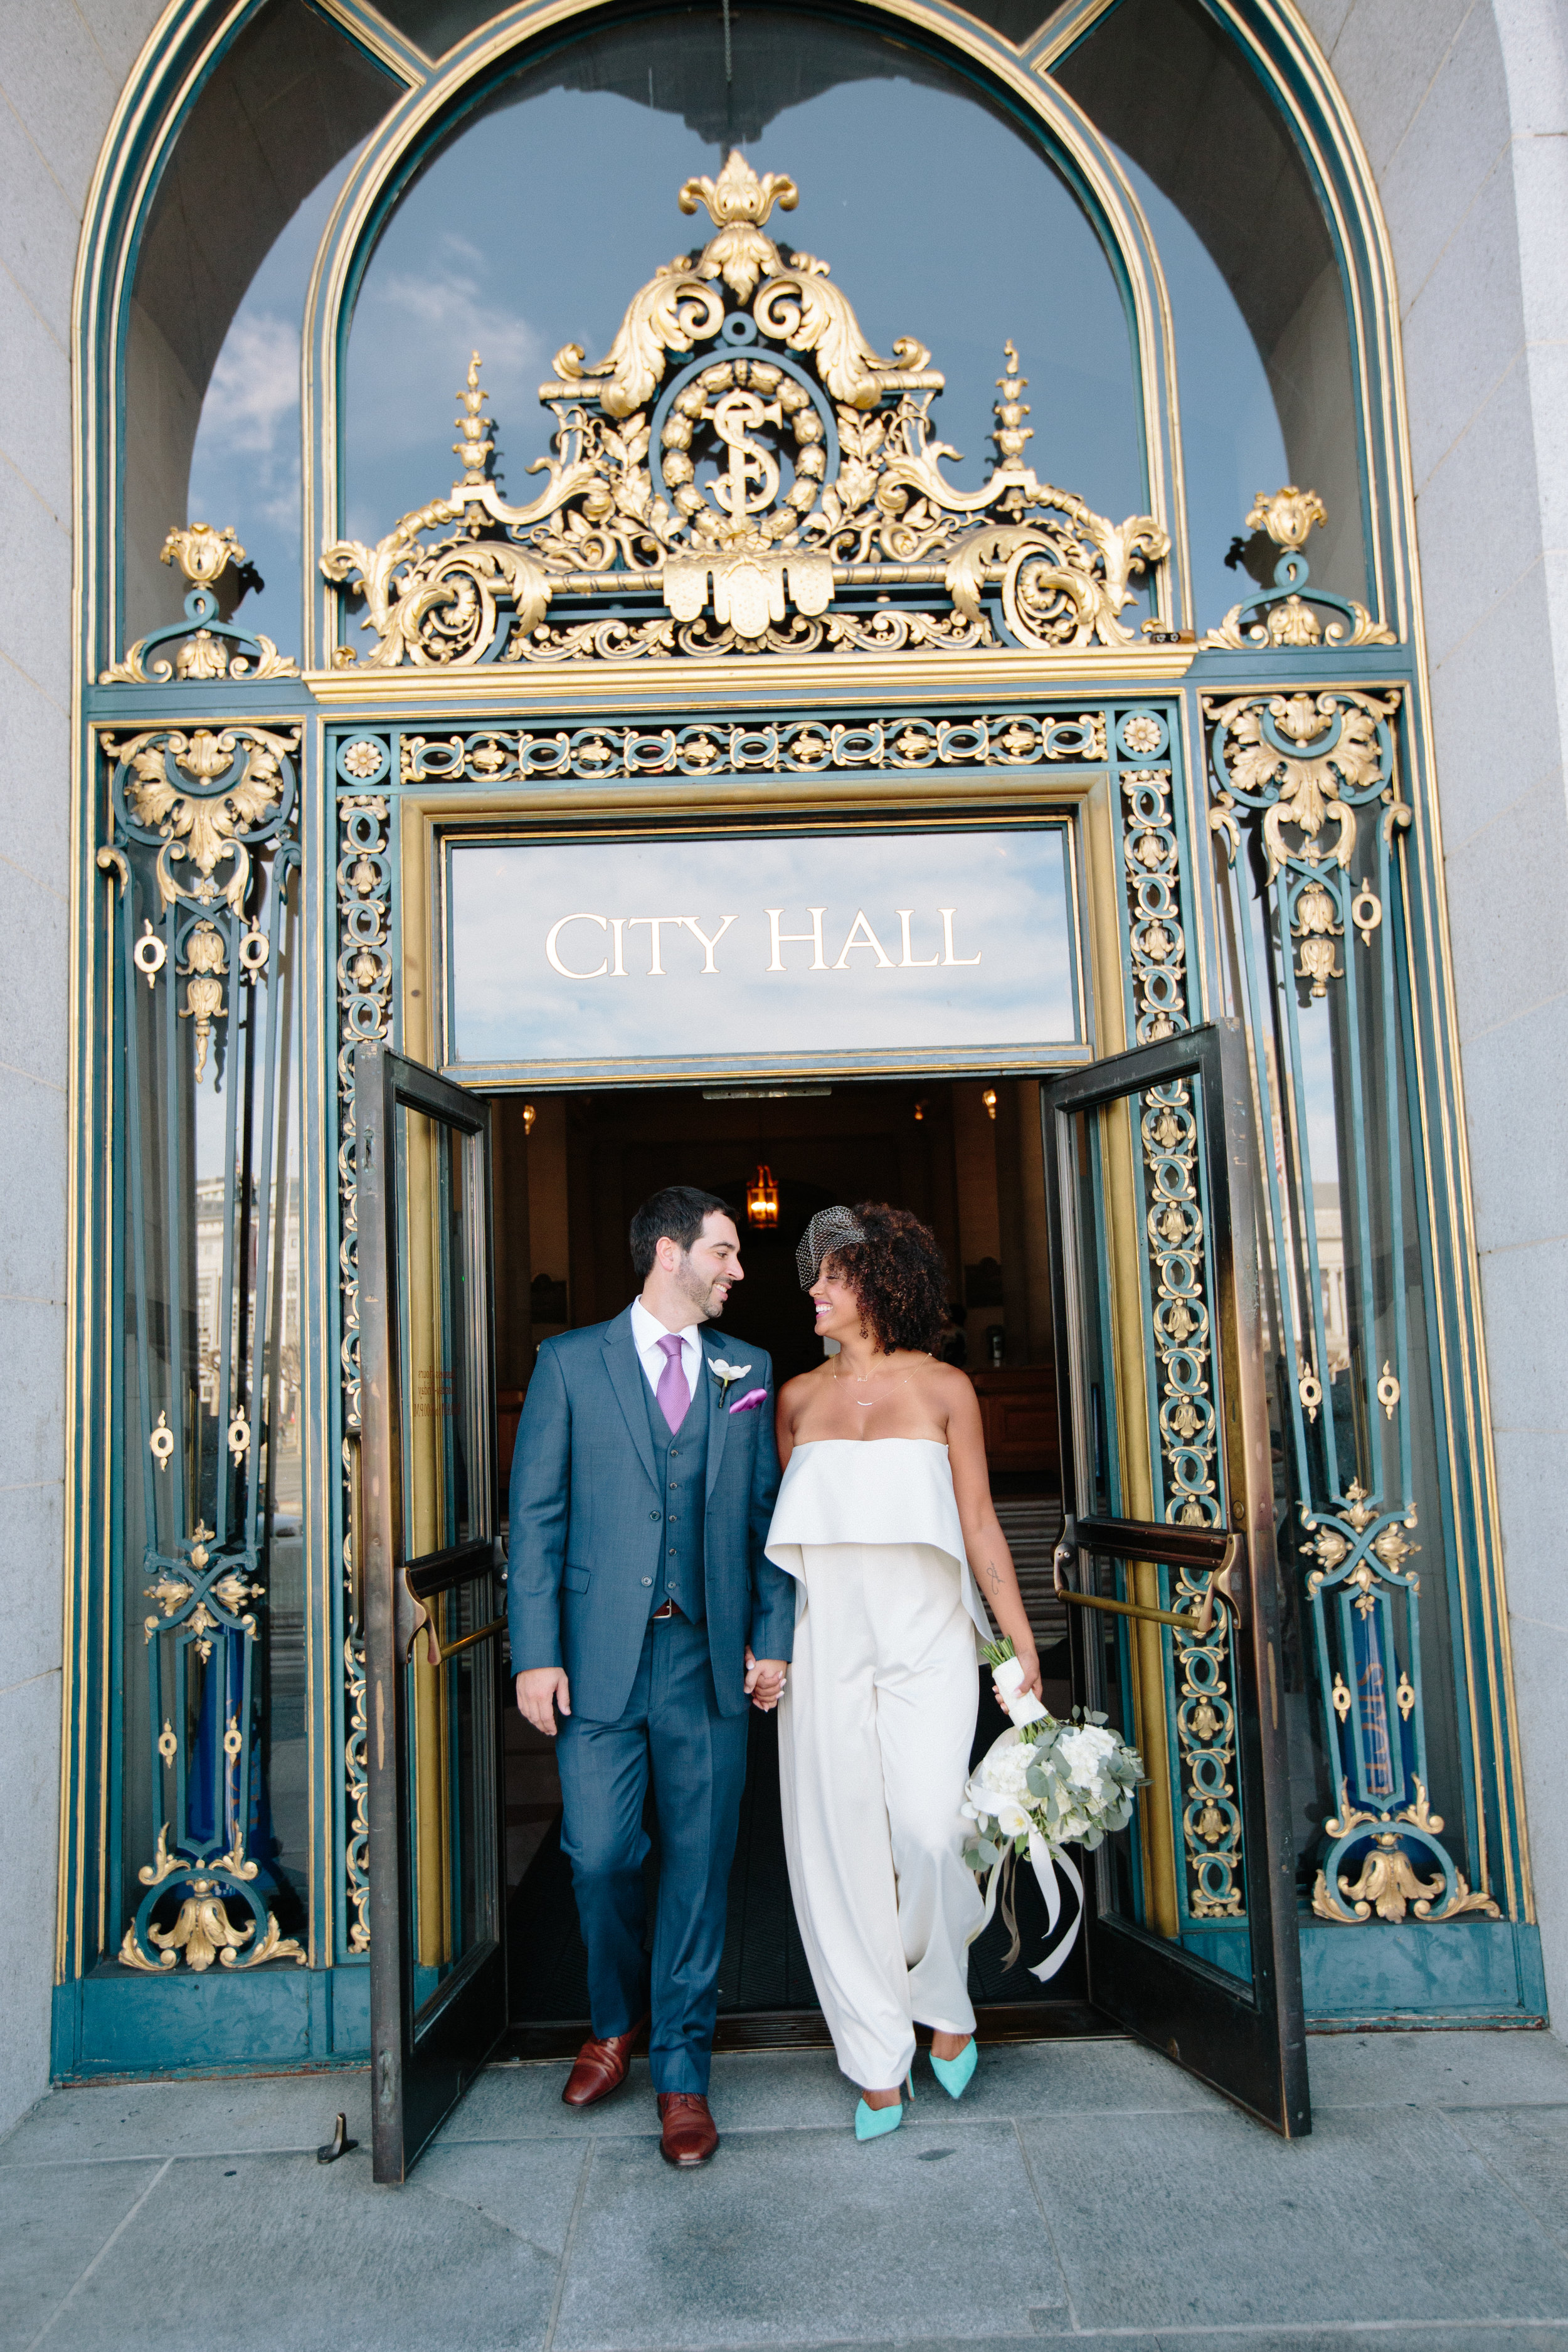 San Francisco Courthouse Wedding.Real Couples Pantsuit Glam At The Courthouse Chloe Mike